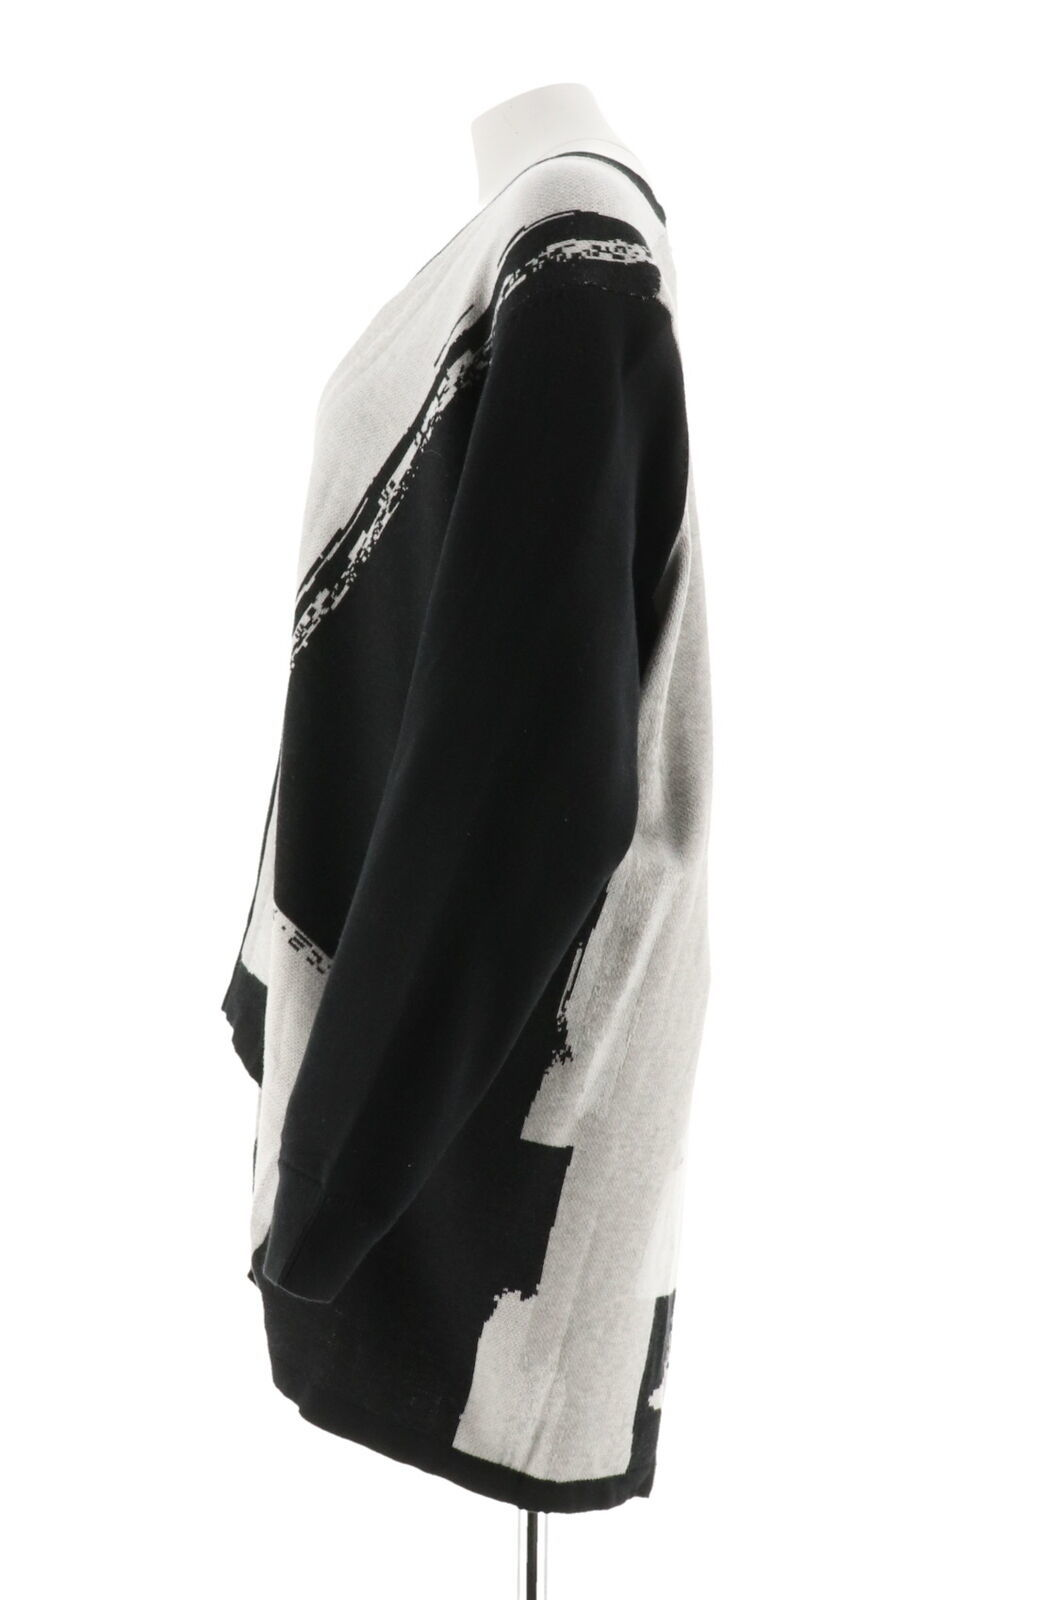 H Halston Long Slv Jacquard Sweater Cardigan Black M NEW A301941 image 2